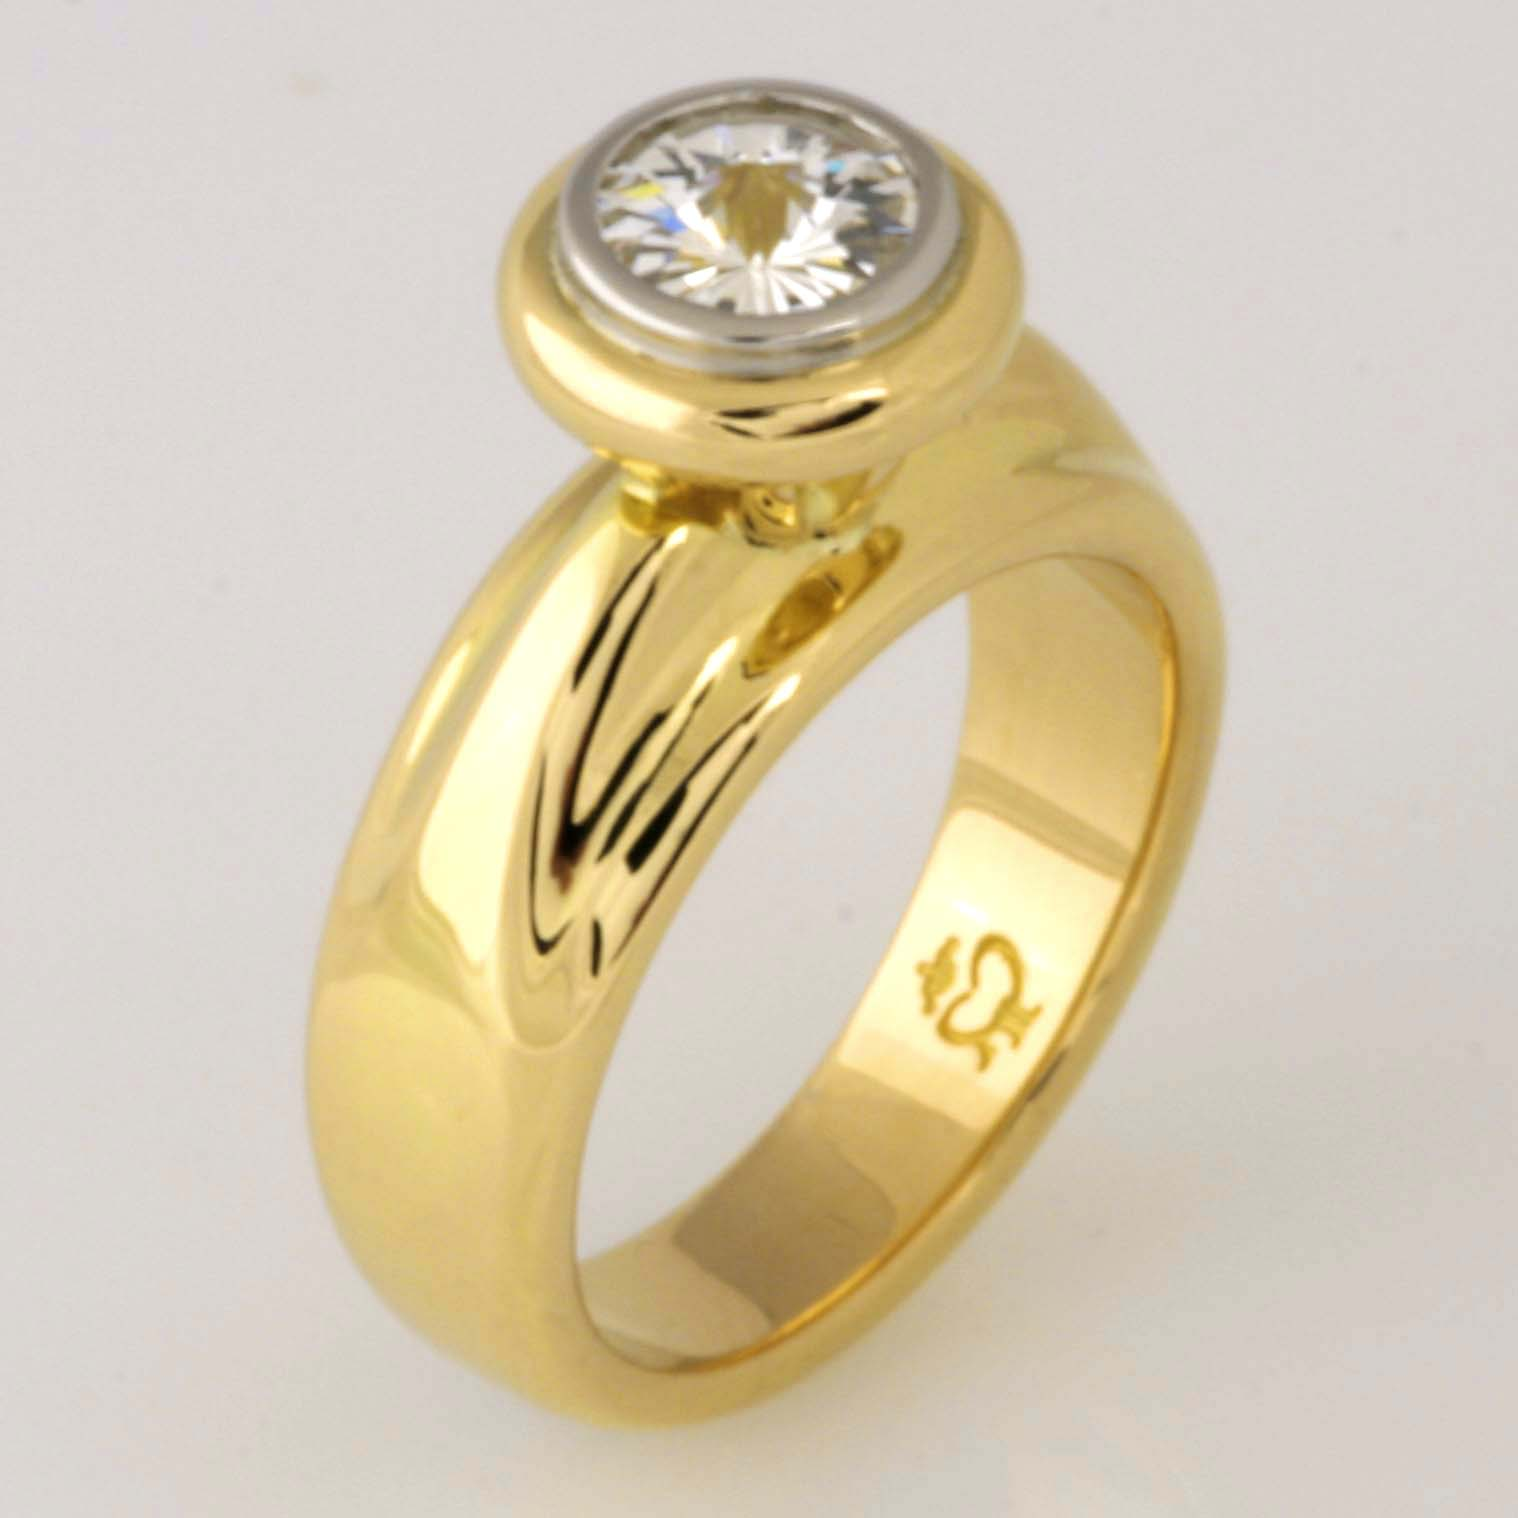 Handmade ladies 18ct yellow gold and palladium 'Spirit' cut diamond ring